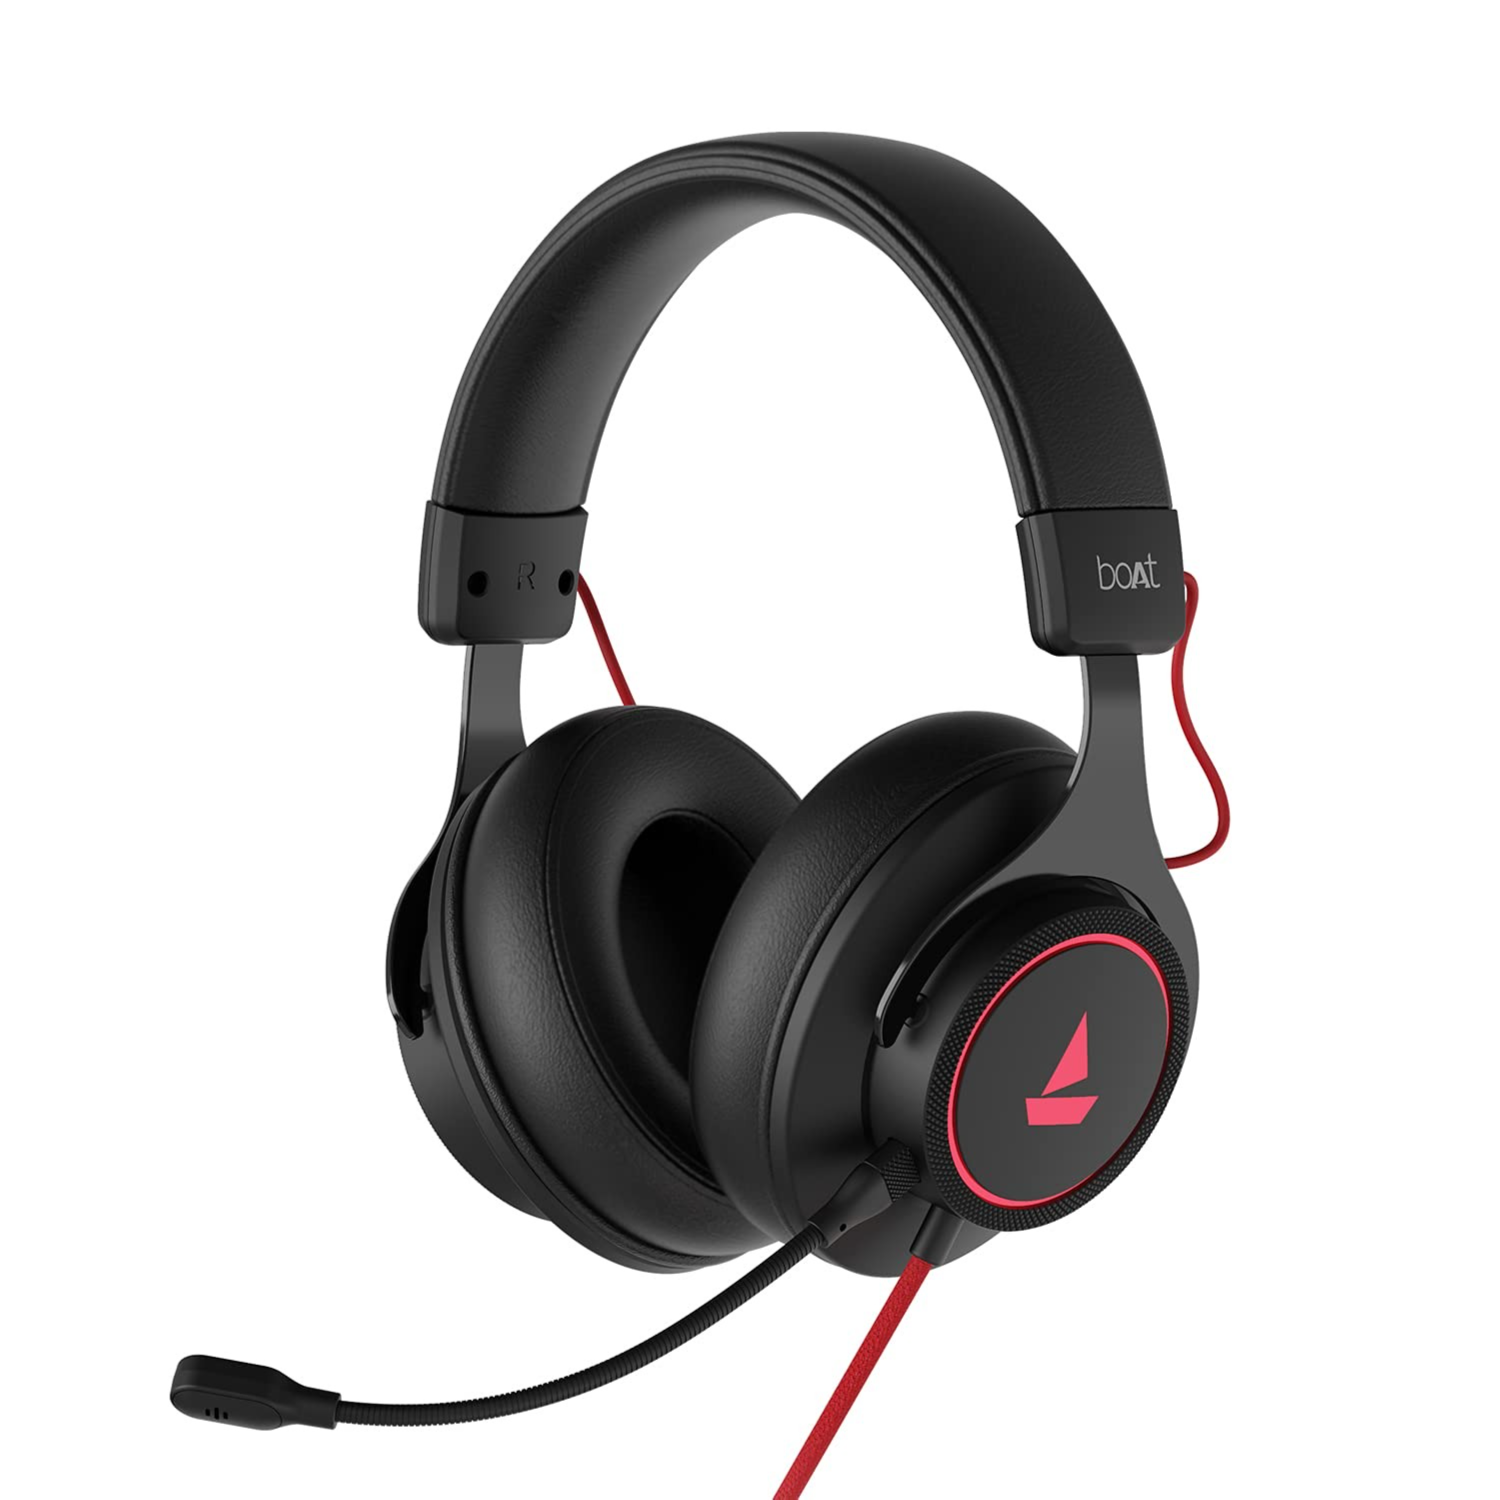 Amazon.in: Buy boAt Immortal IM1000D Dual Channel Gaming Headphones with 7.1 Channel Surround Audio, Dolby Atmos, 50mm Drivers & RGB Breathing LEDs(Black Sabre) Online at Low Prices in India | boAt Reviews & Ratings